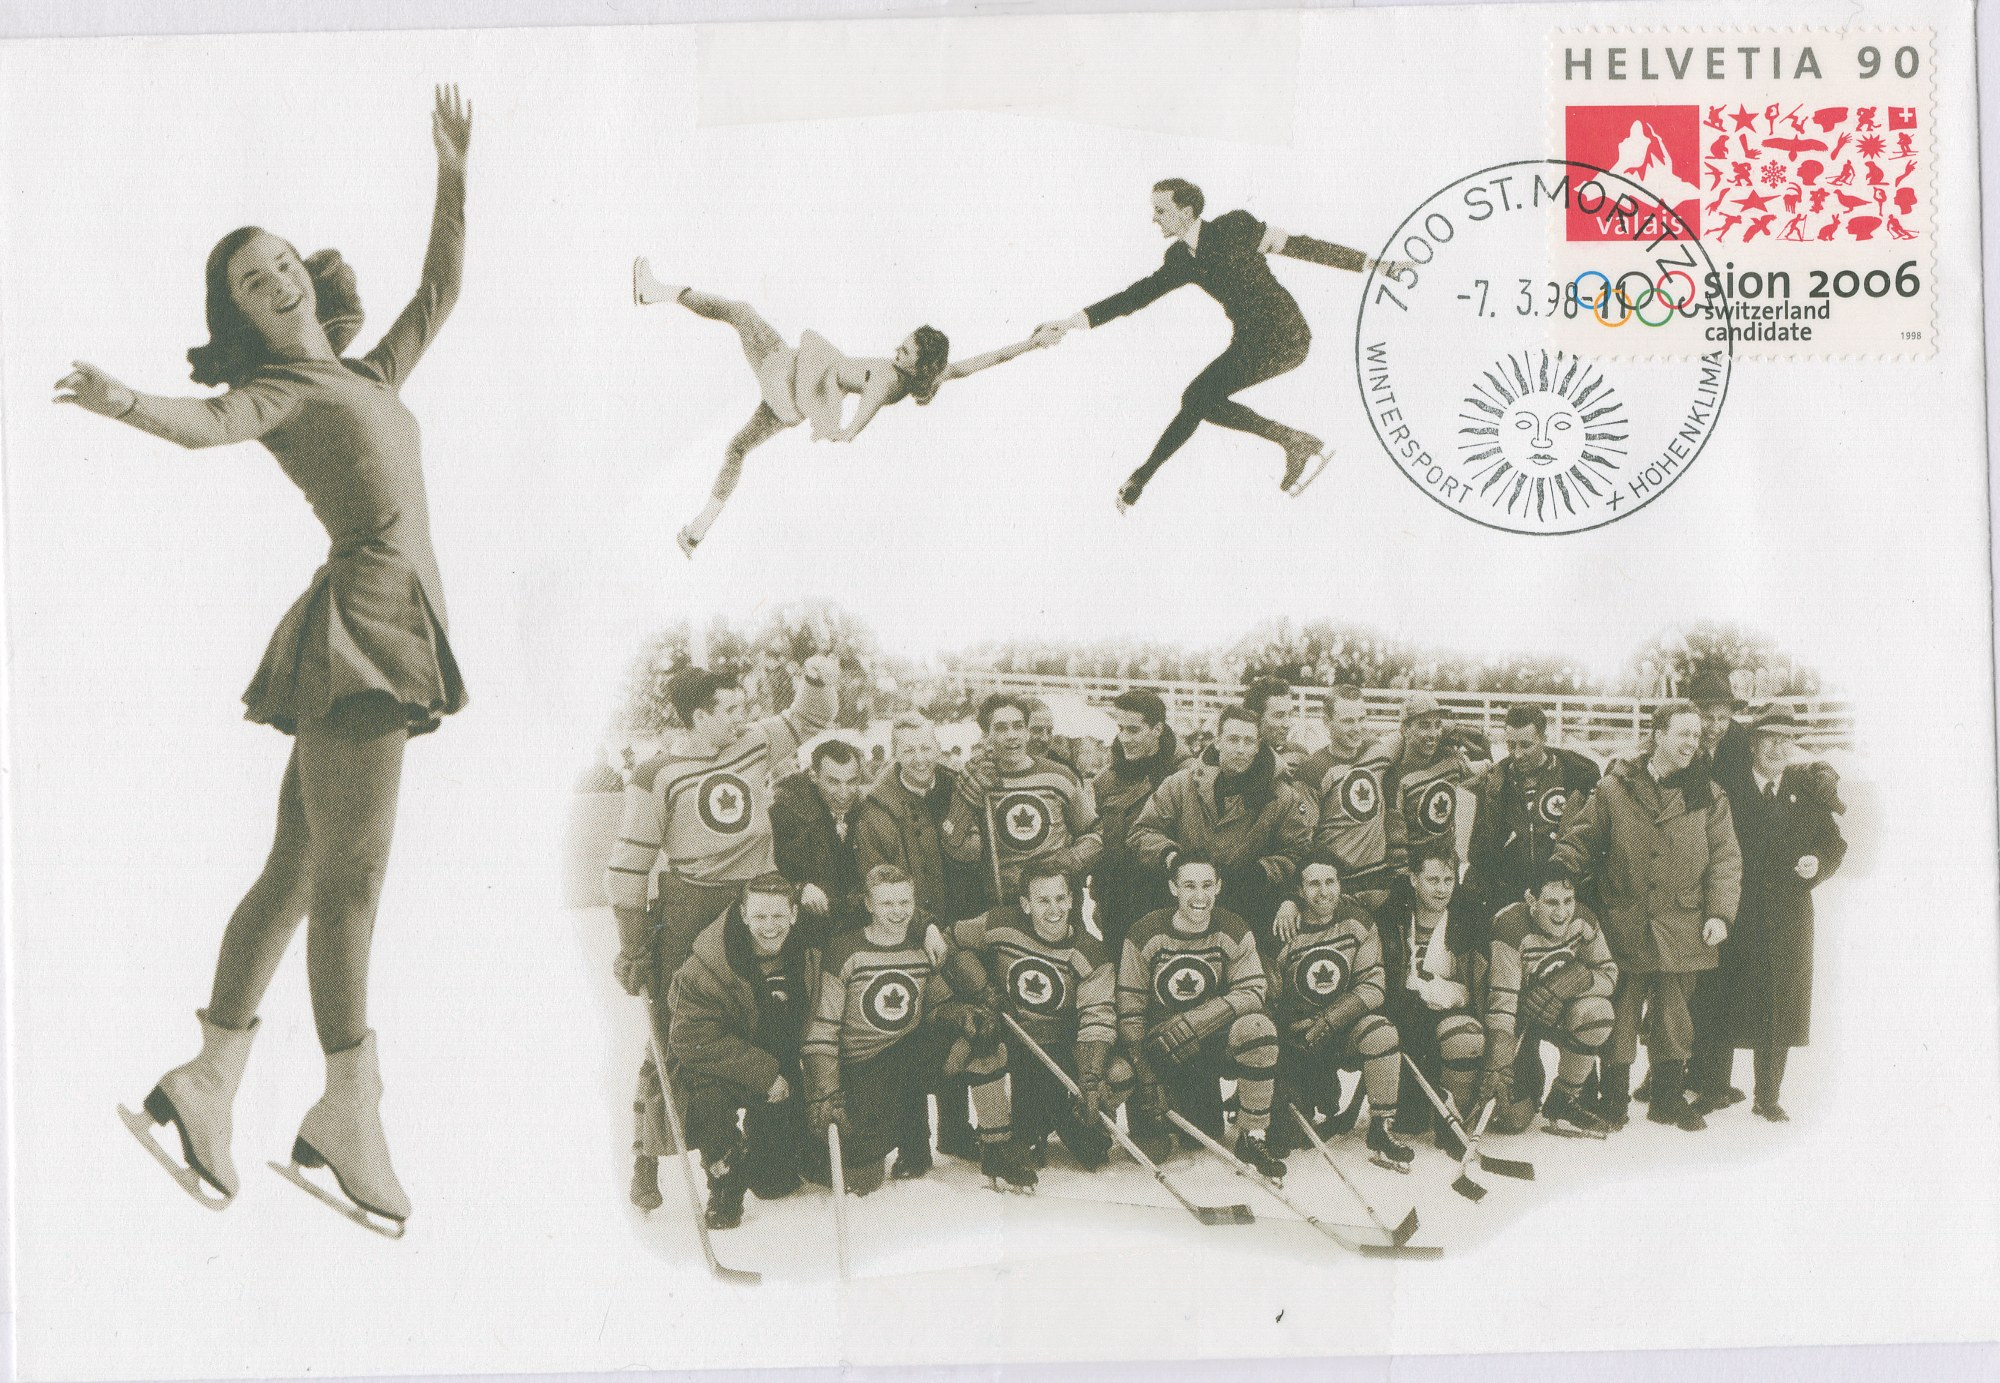 Photo: SWISS commemorative stamp honoring the R.C.A.F. Flyers and other Canadian Medal Winners